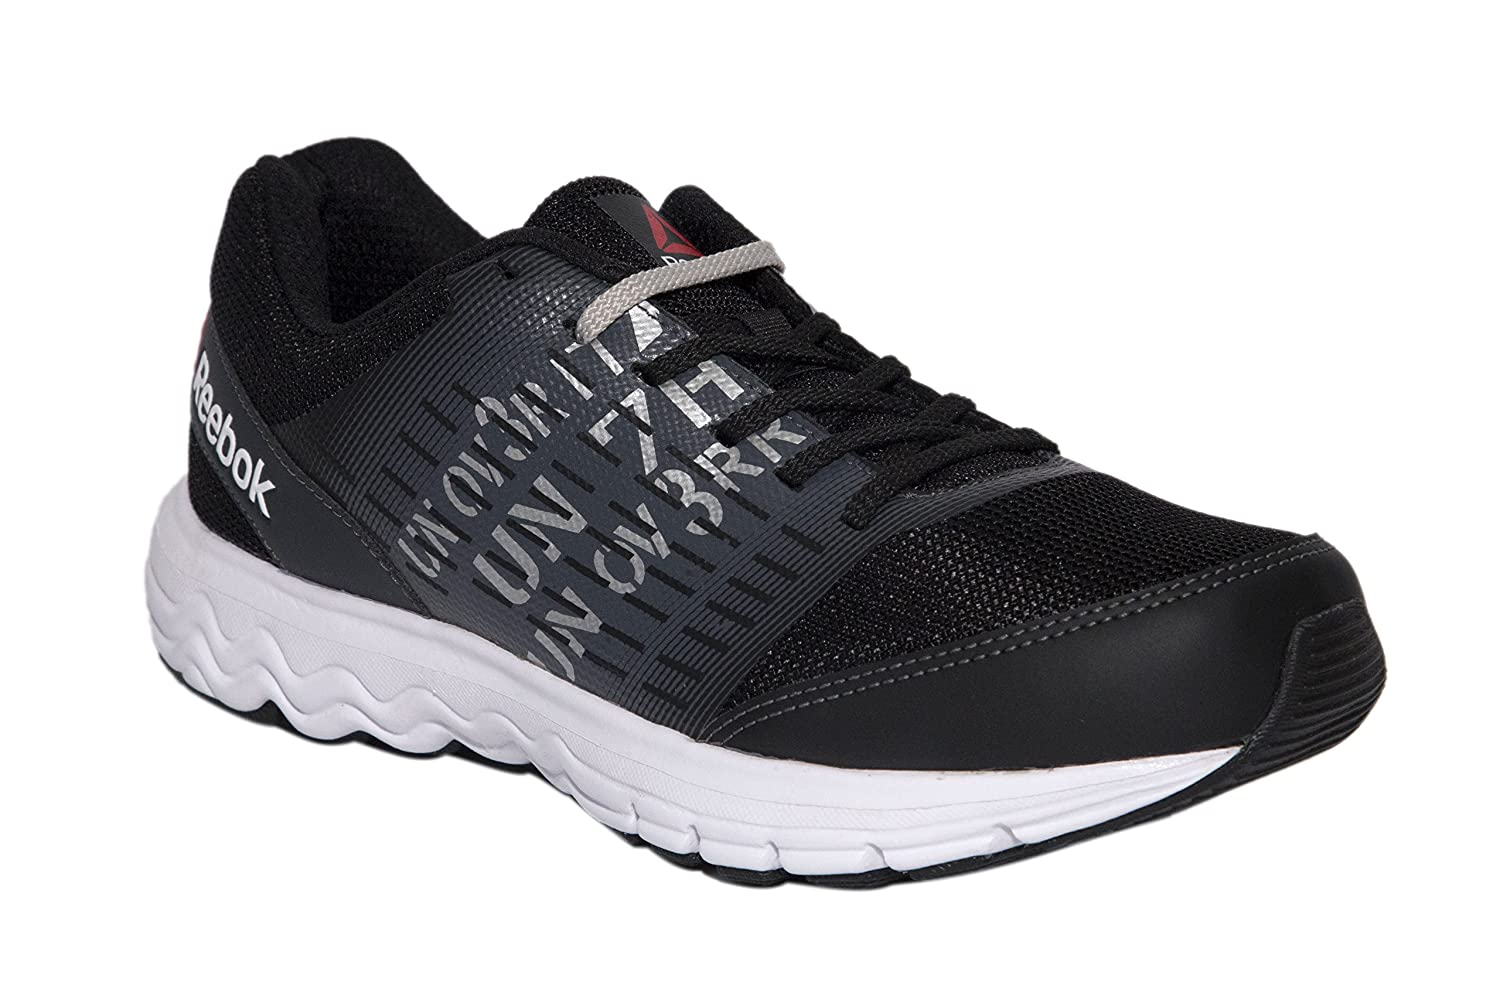 789484bf9 Reebok Men s Dual Dash Run Black Running Shoes - 7 UK India (40.5 EU)(8  US)(BS7189)  Buy Online at Low Prices in India - Amazon.in